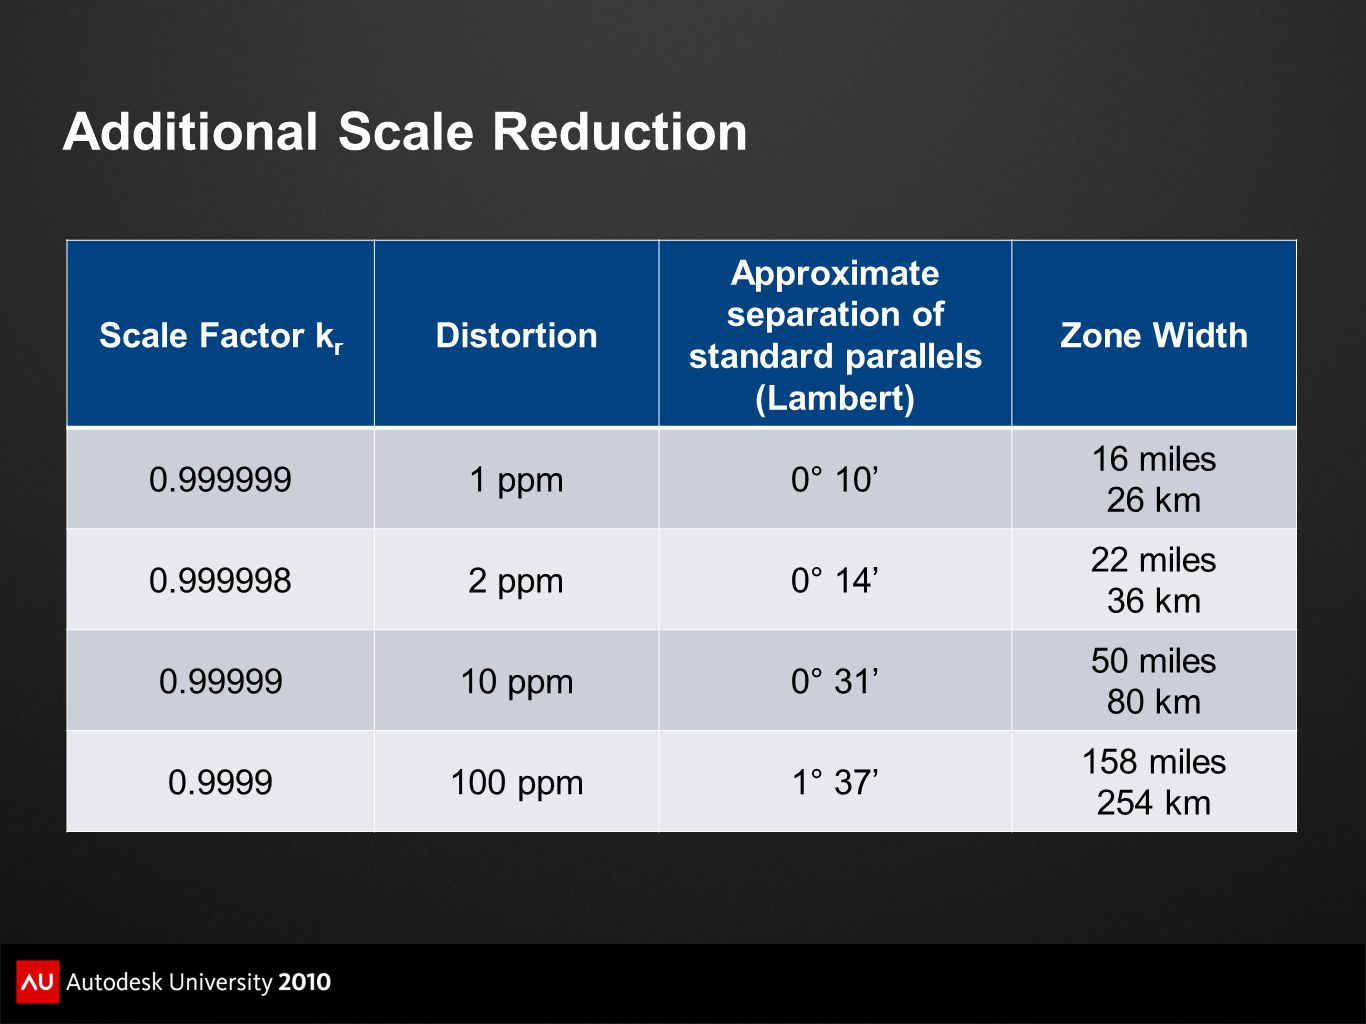 Additional Scale Reduction